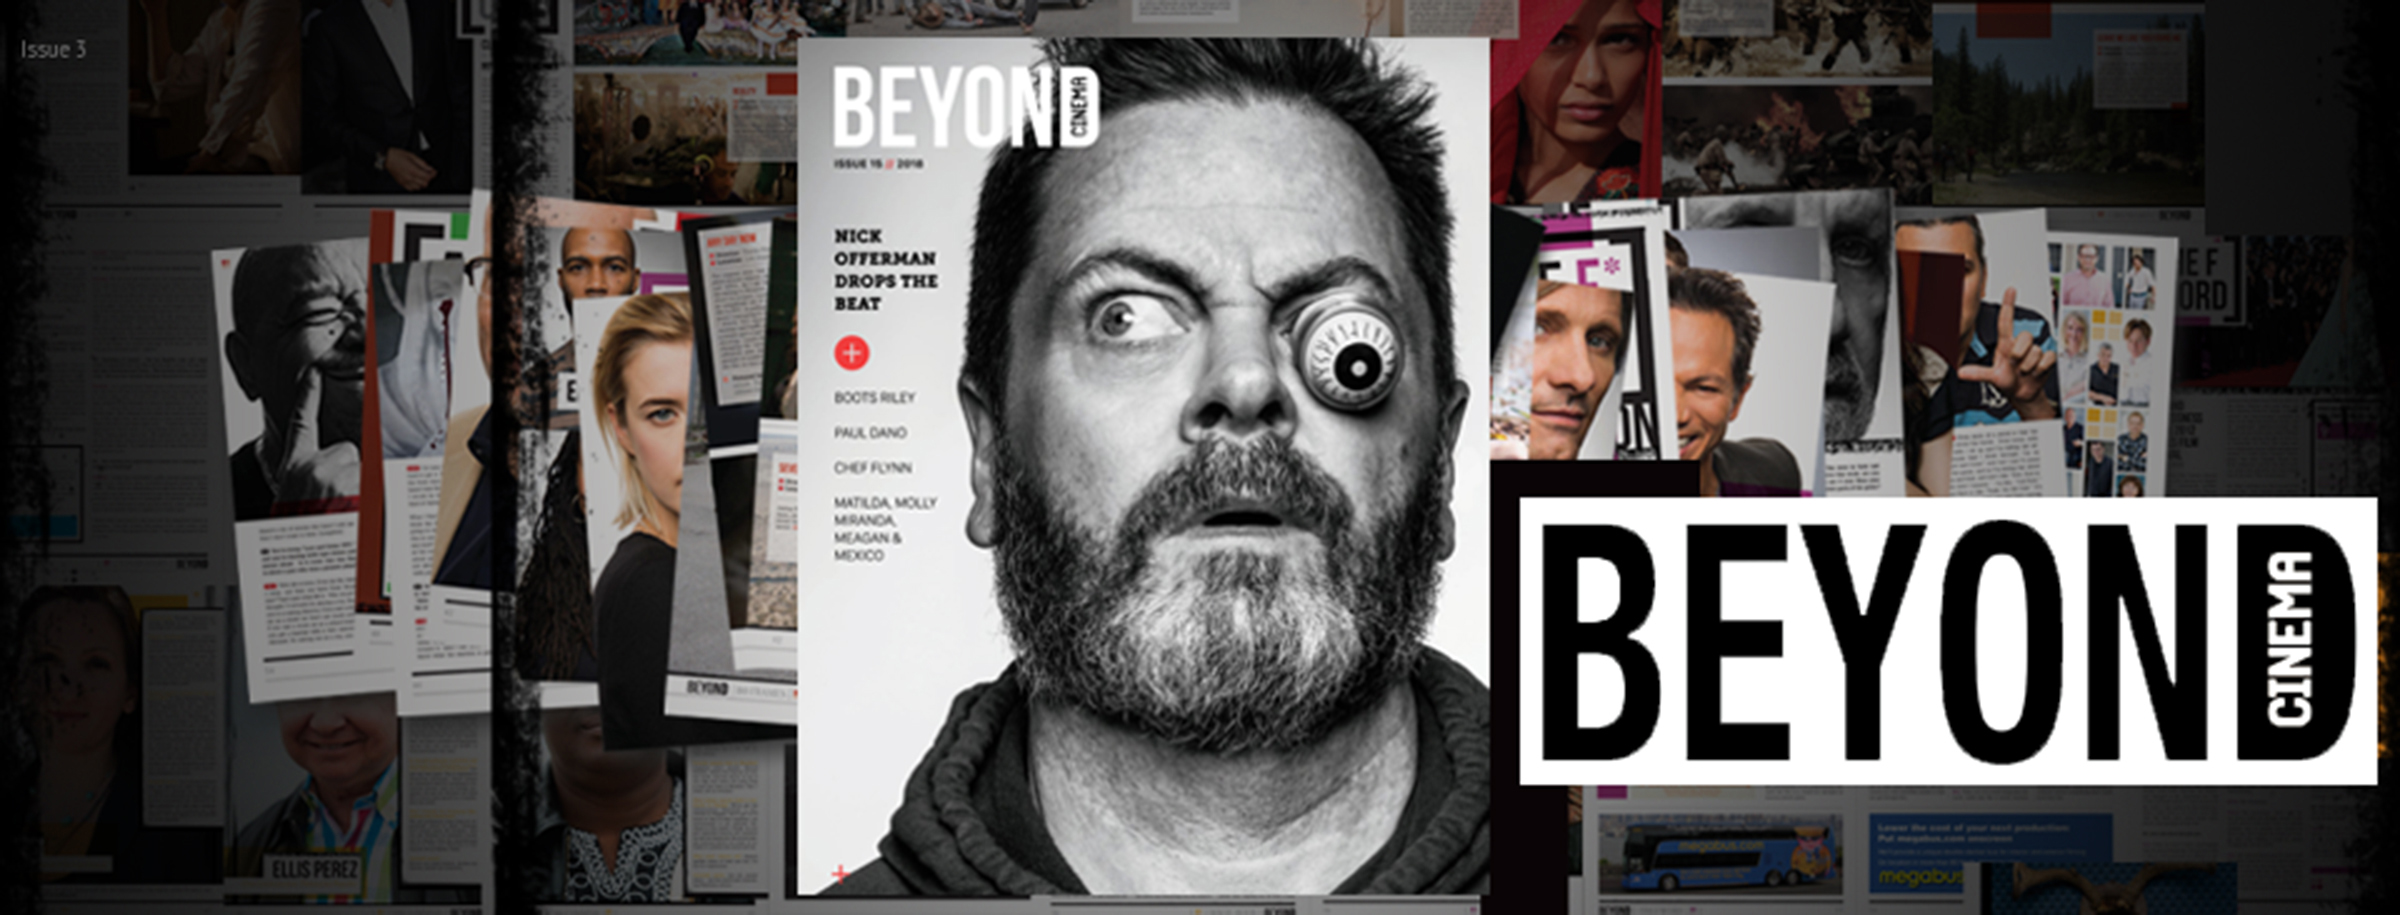 Beyond Cinema Web masthead 2018